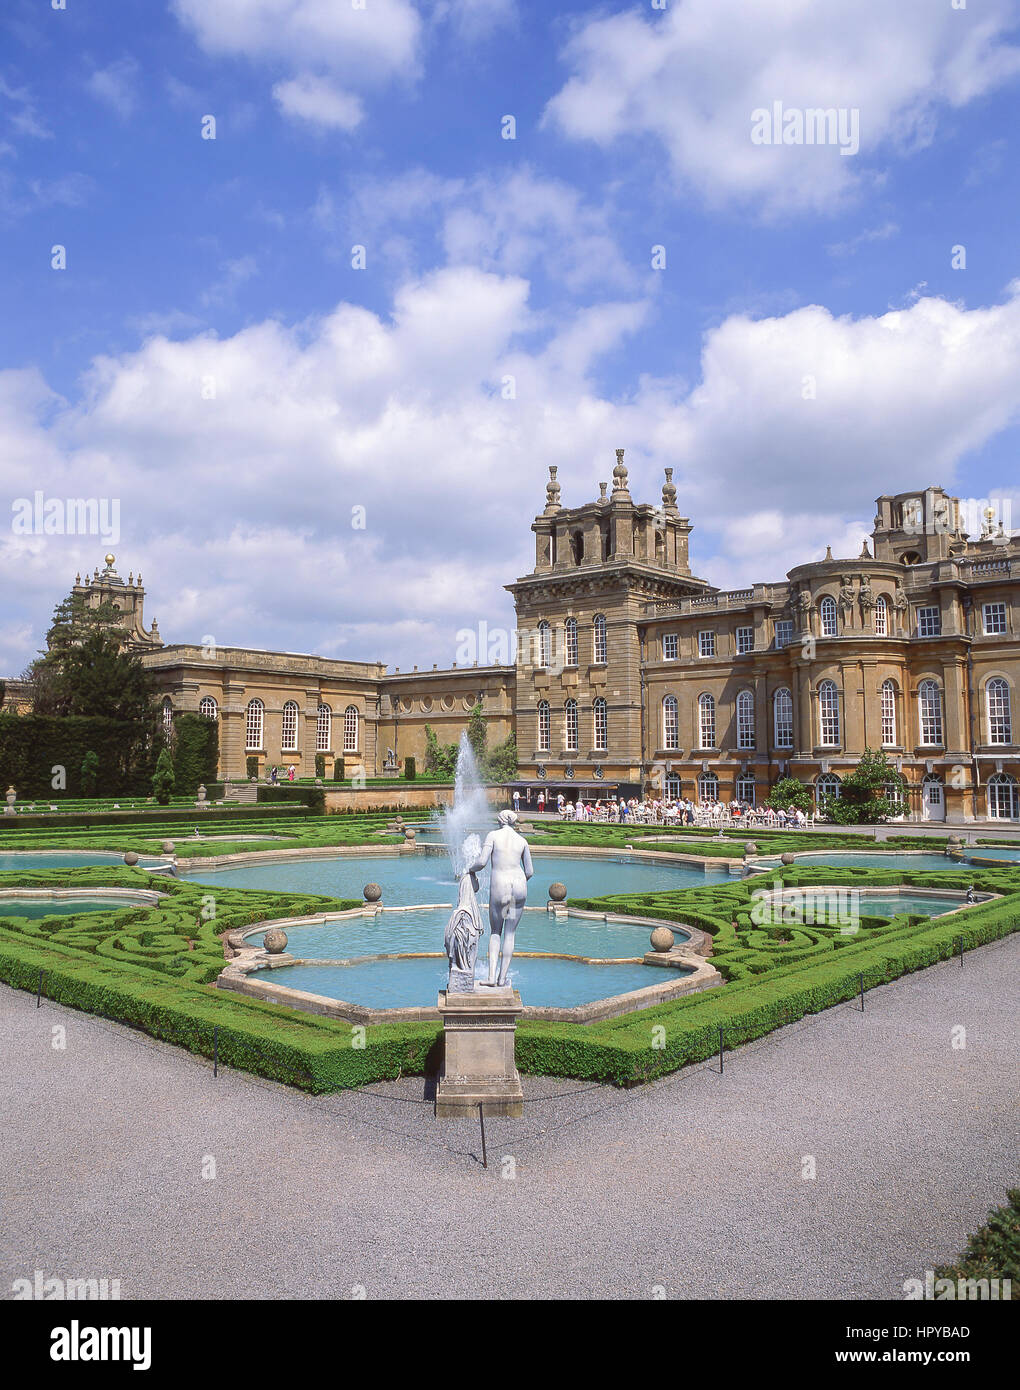 The Water Terraces at Blenheim Palace, Woodstock, Oxford, Oxfordshire, England, United Kingdom - Stock Image